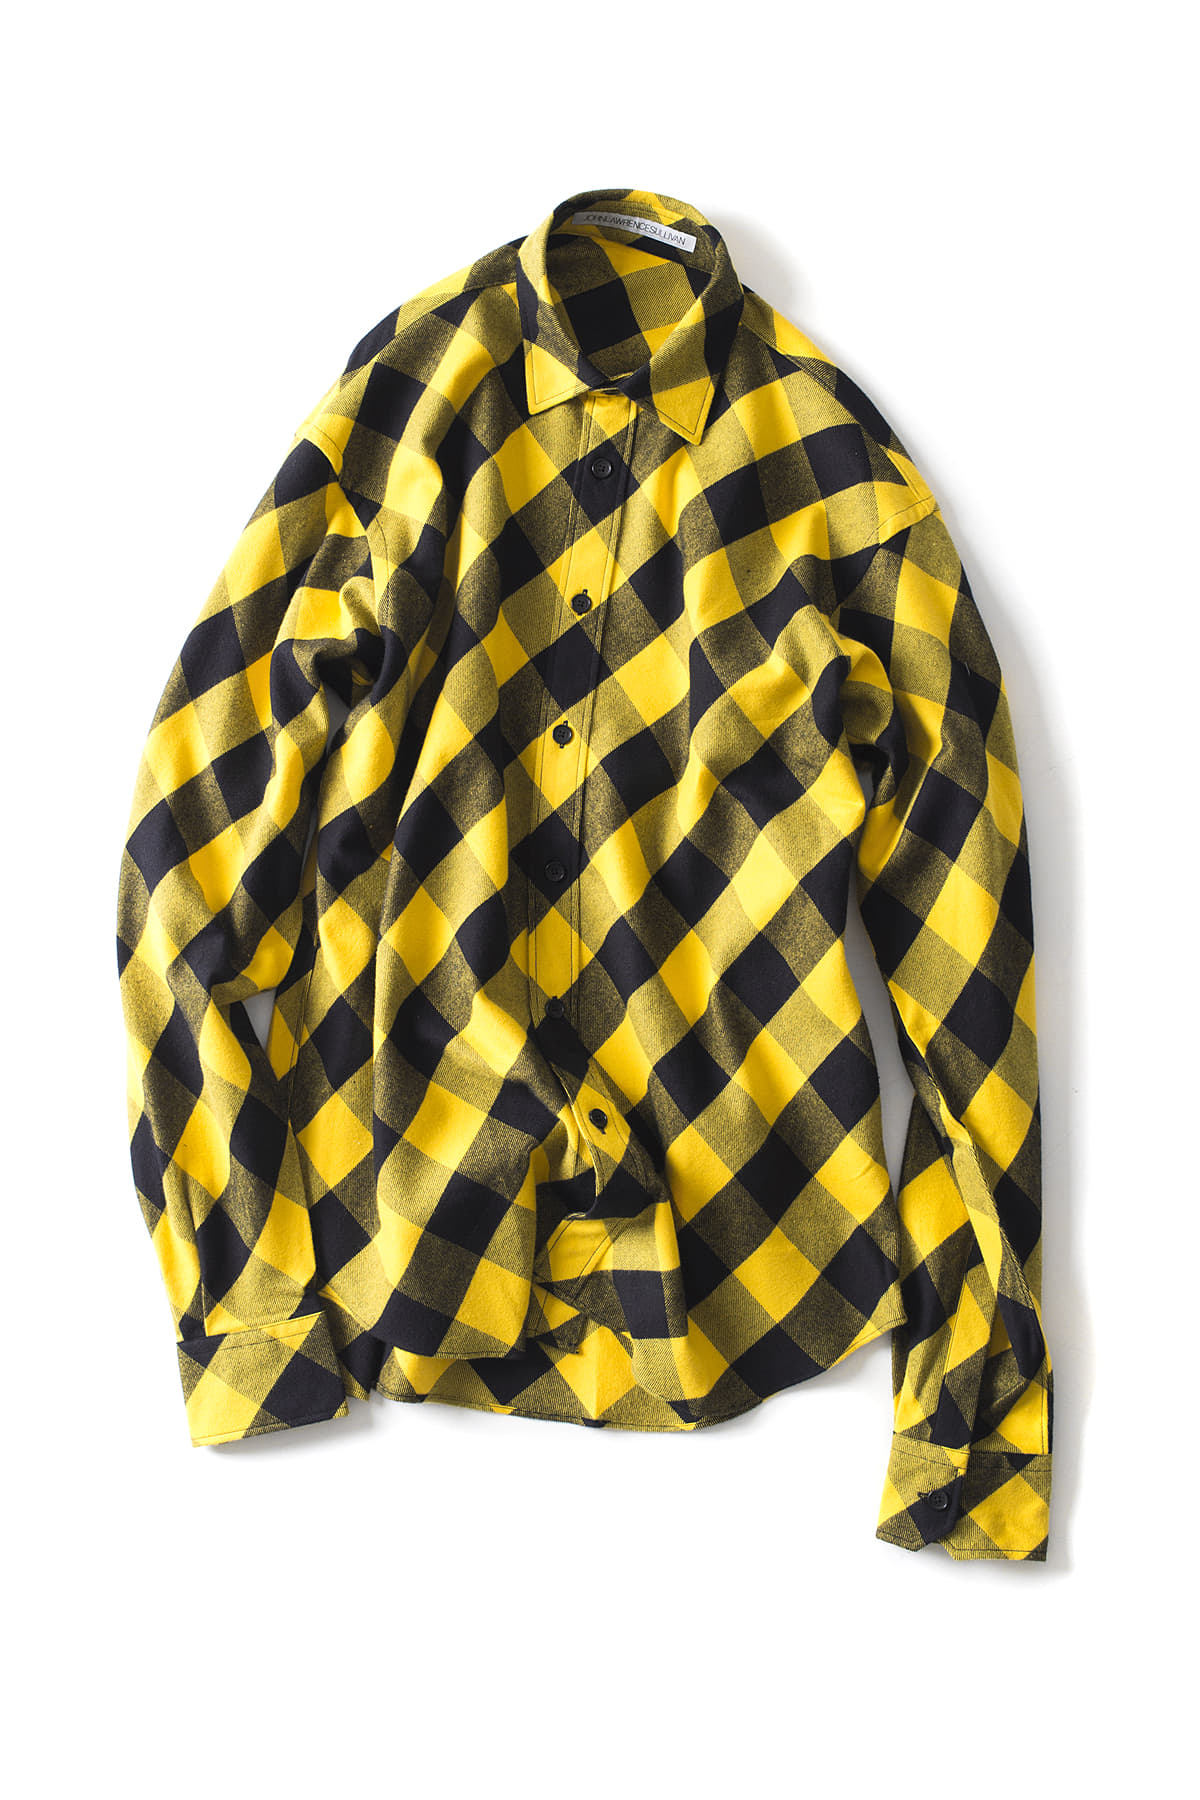 JOHN LAWRENCE SULLIVAN : Plaid Shirt (Yellow)